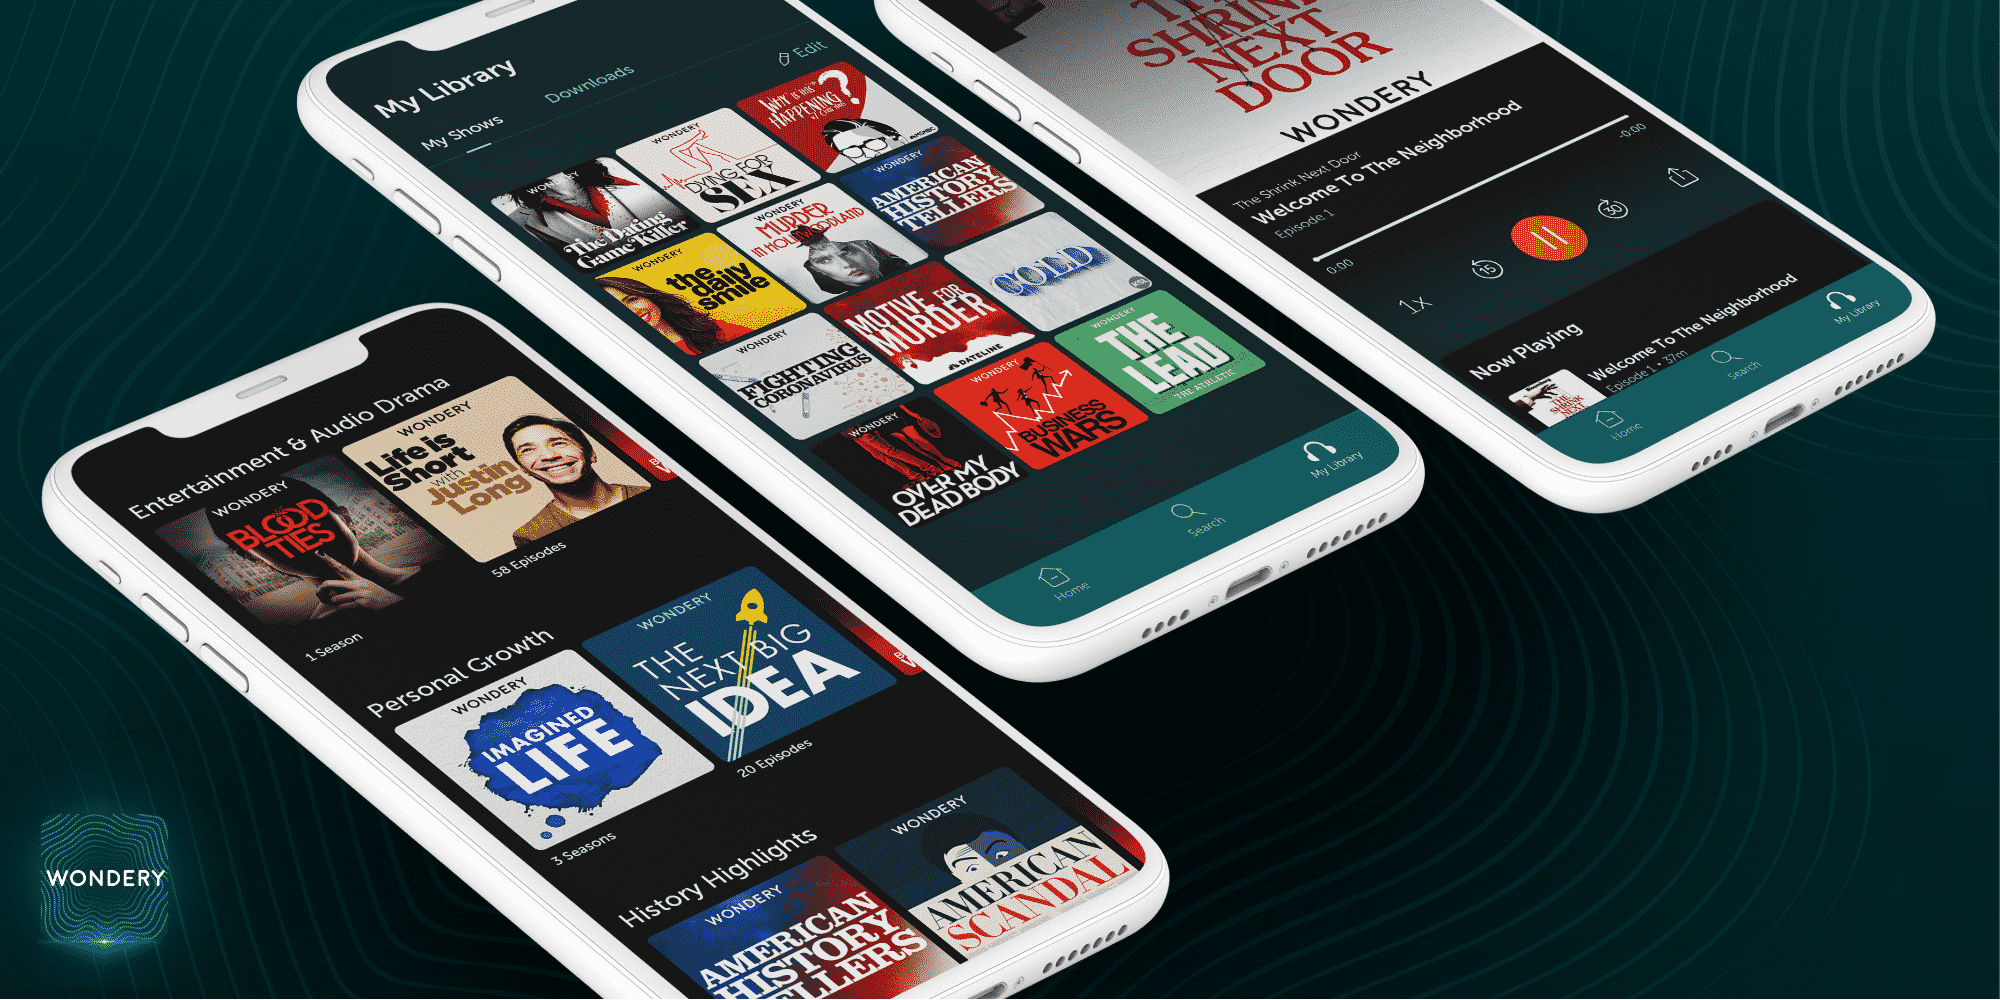 Amazon to expand catalog of original audio content with acquisition of Wondery